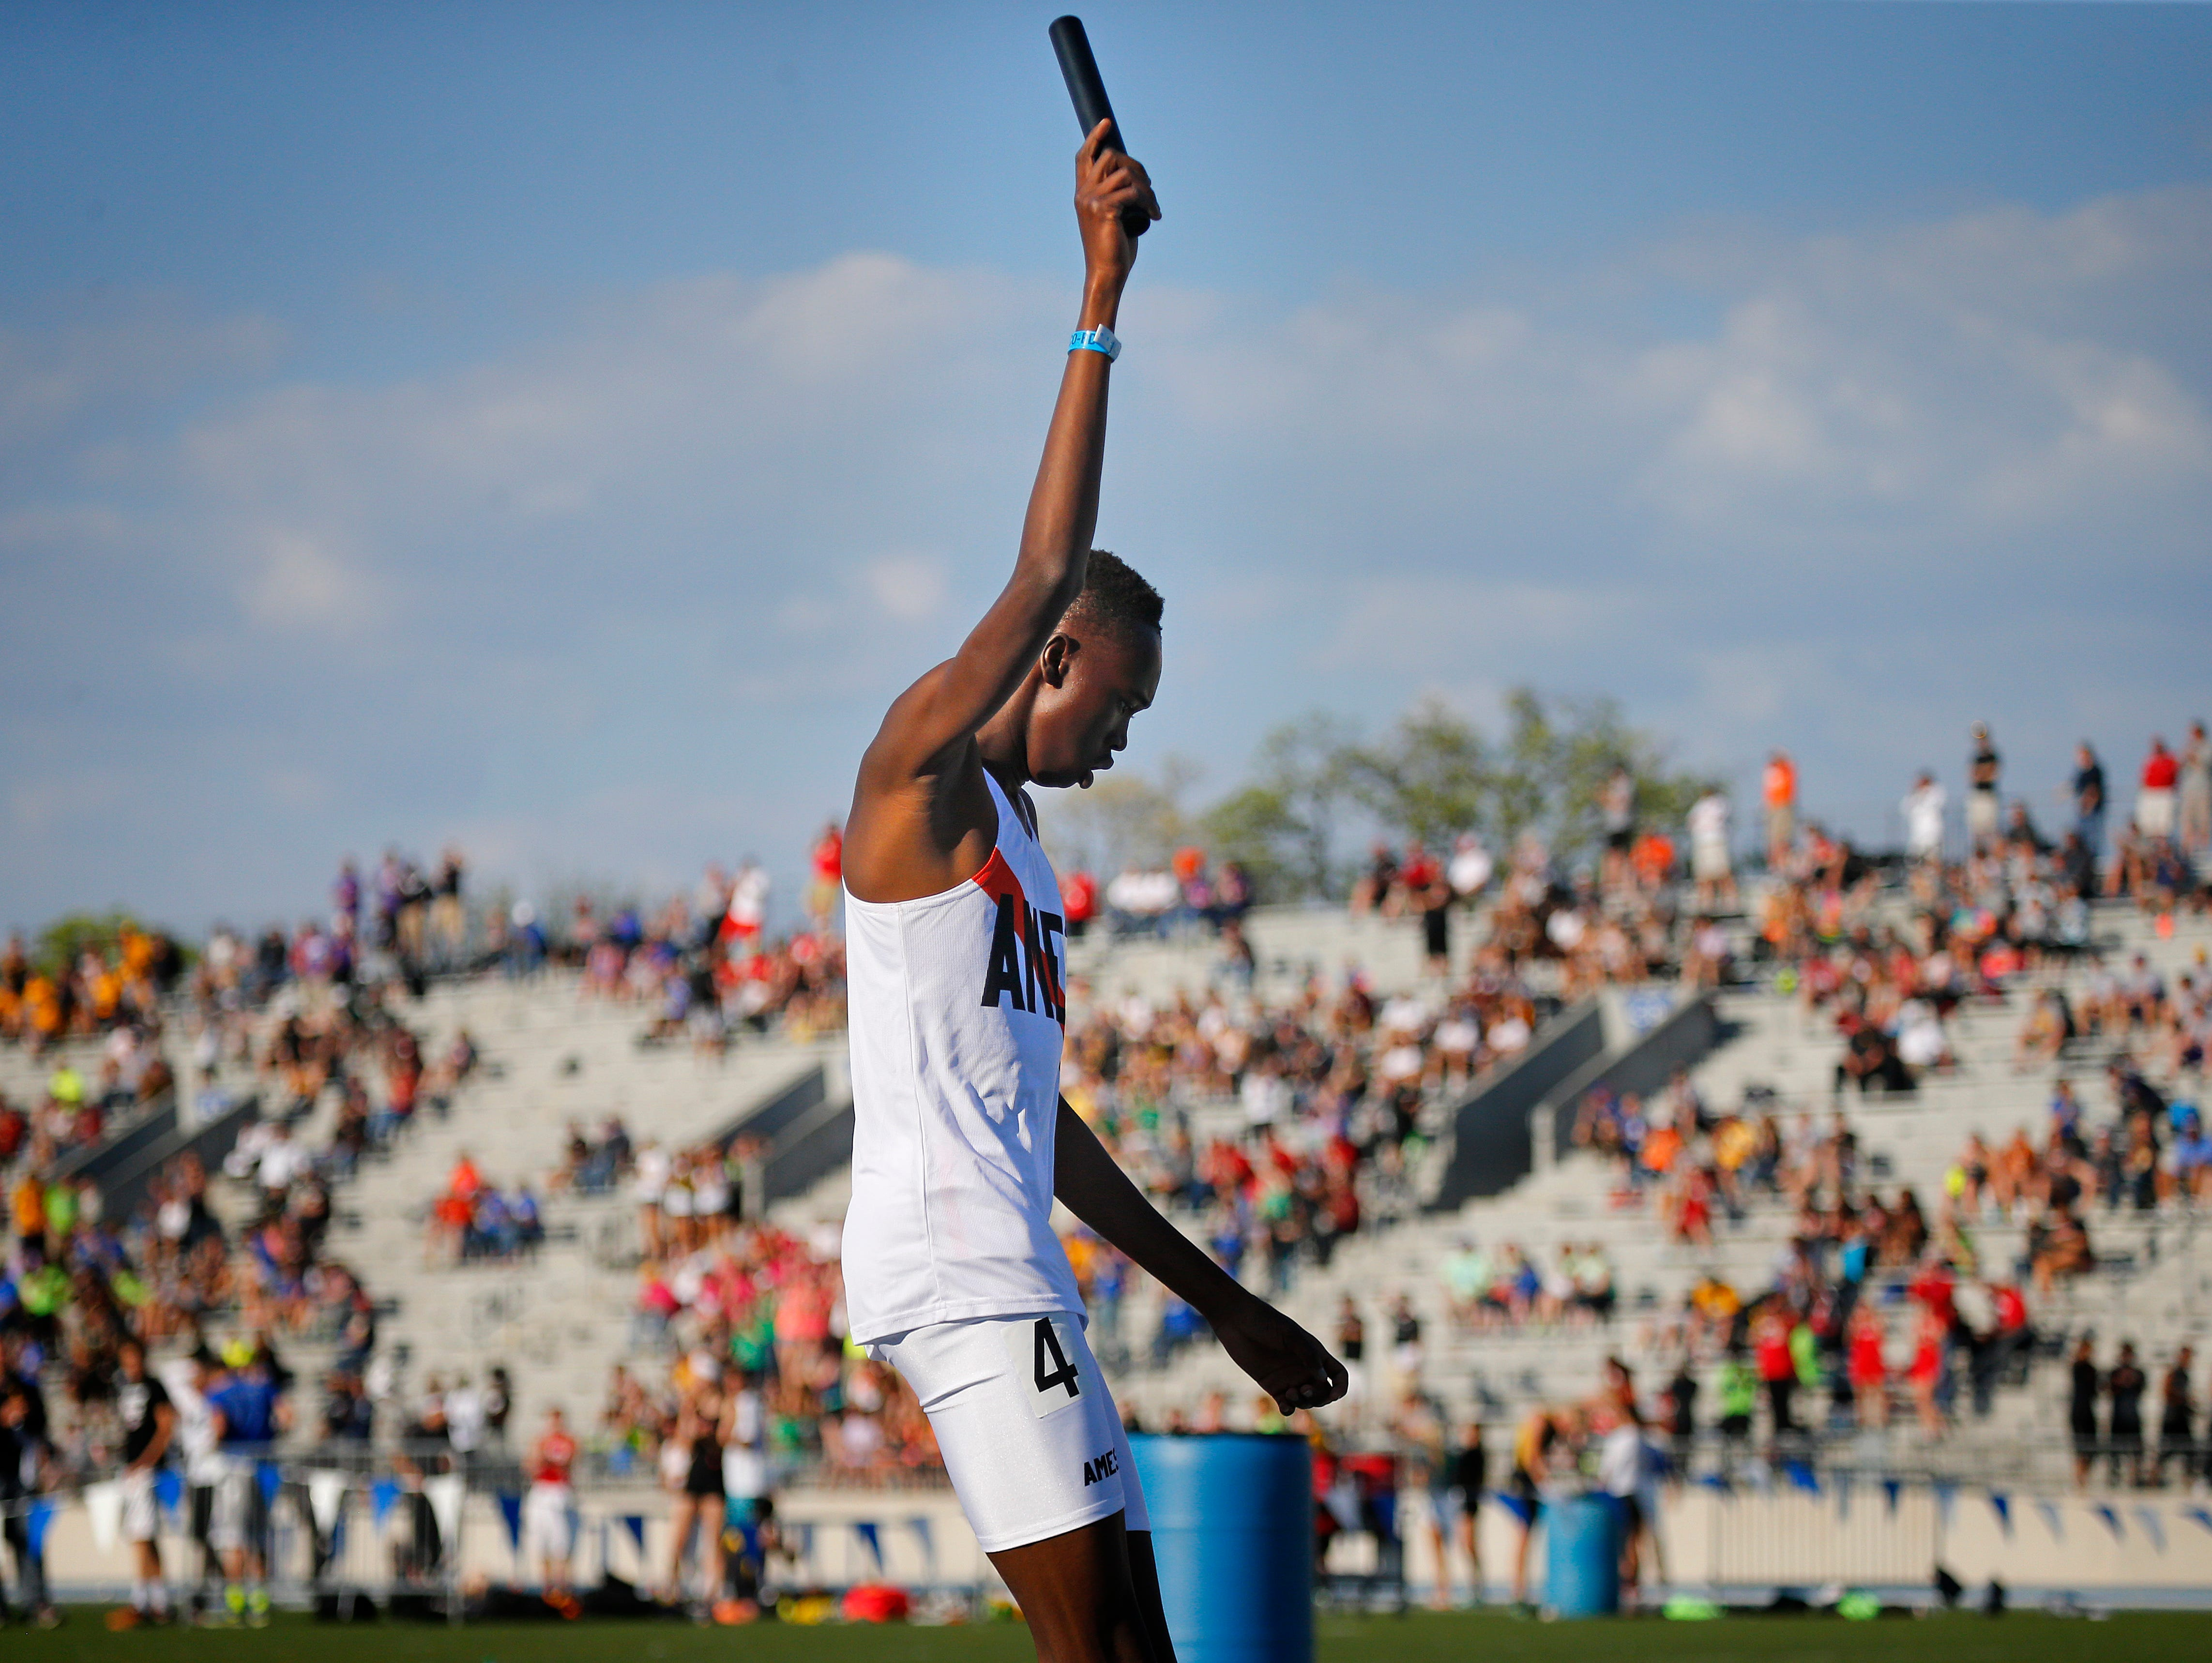 Daniel Chan, anchor of Ames' 4 x 800 relay, celebrates setting a new state record at the state boys' track meet Thursday. The Little Cyclones posted a time of 7:41.43.